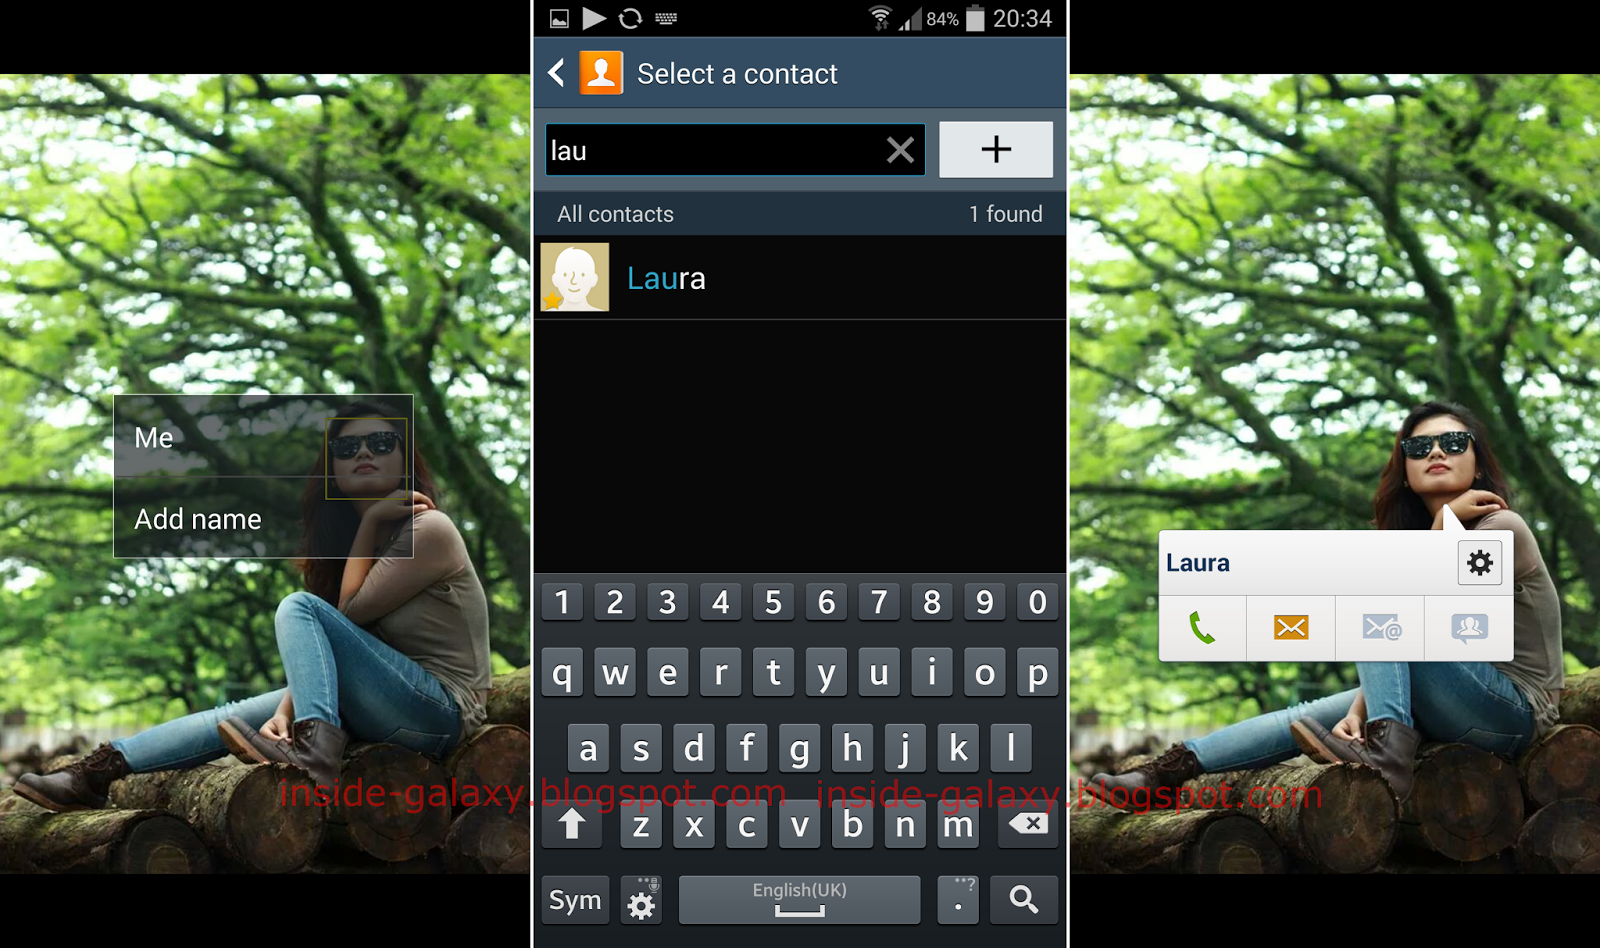 Samsung Galaxy S4: How to Enable and Use Face Tag in the Gallery App